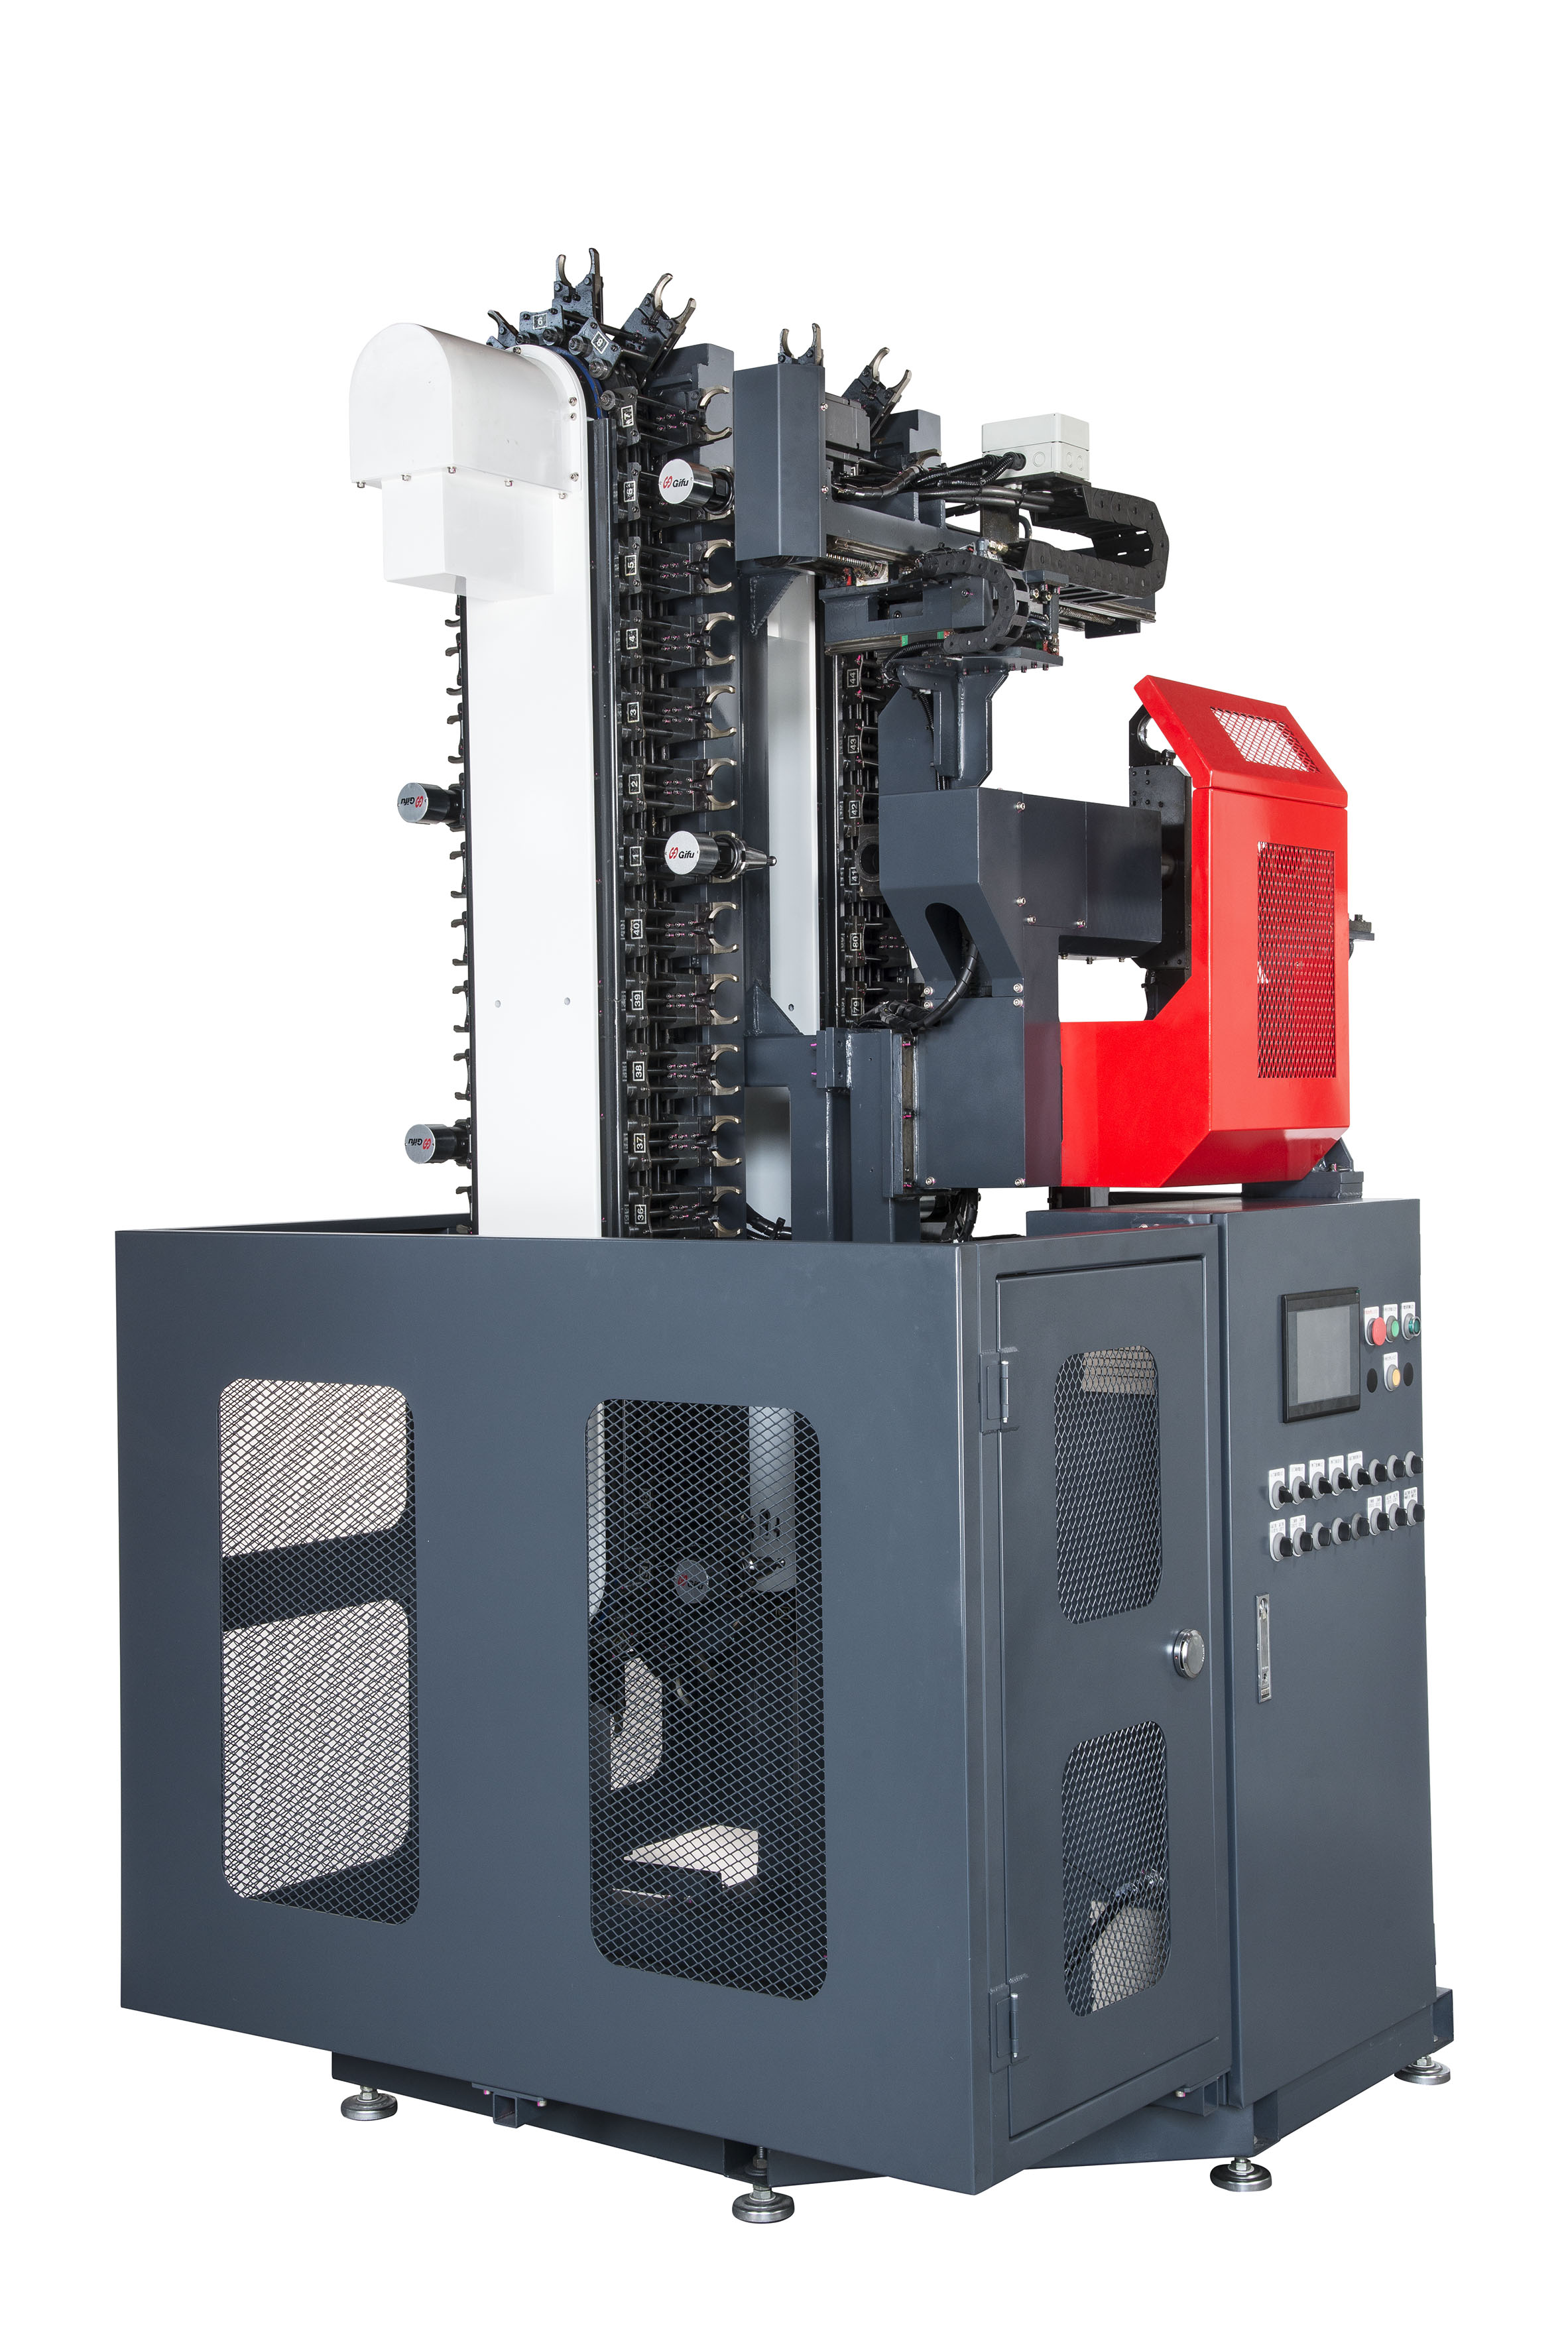 High capacity and expandable multiple tool changer